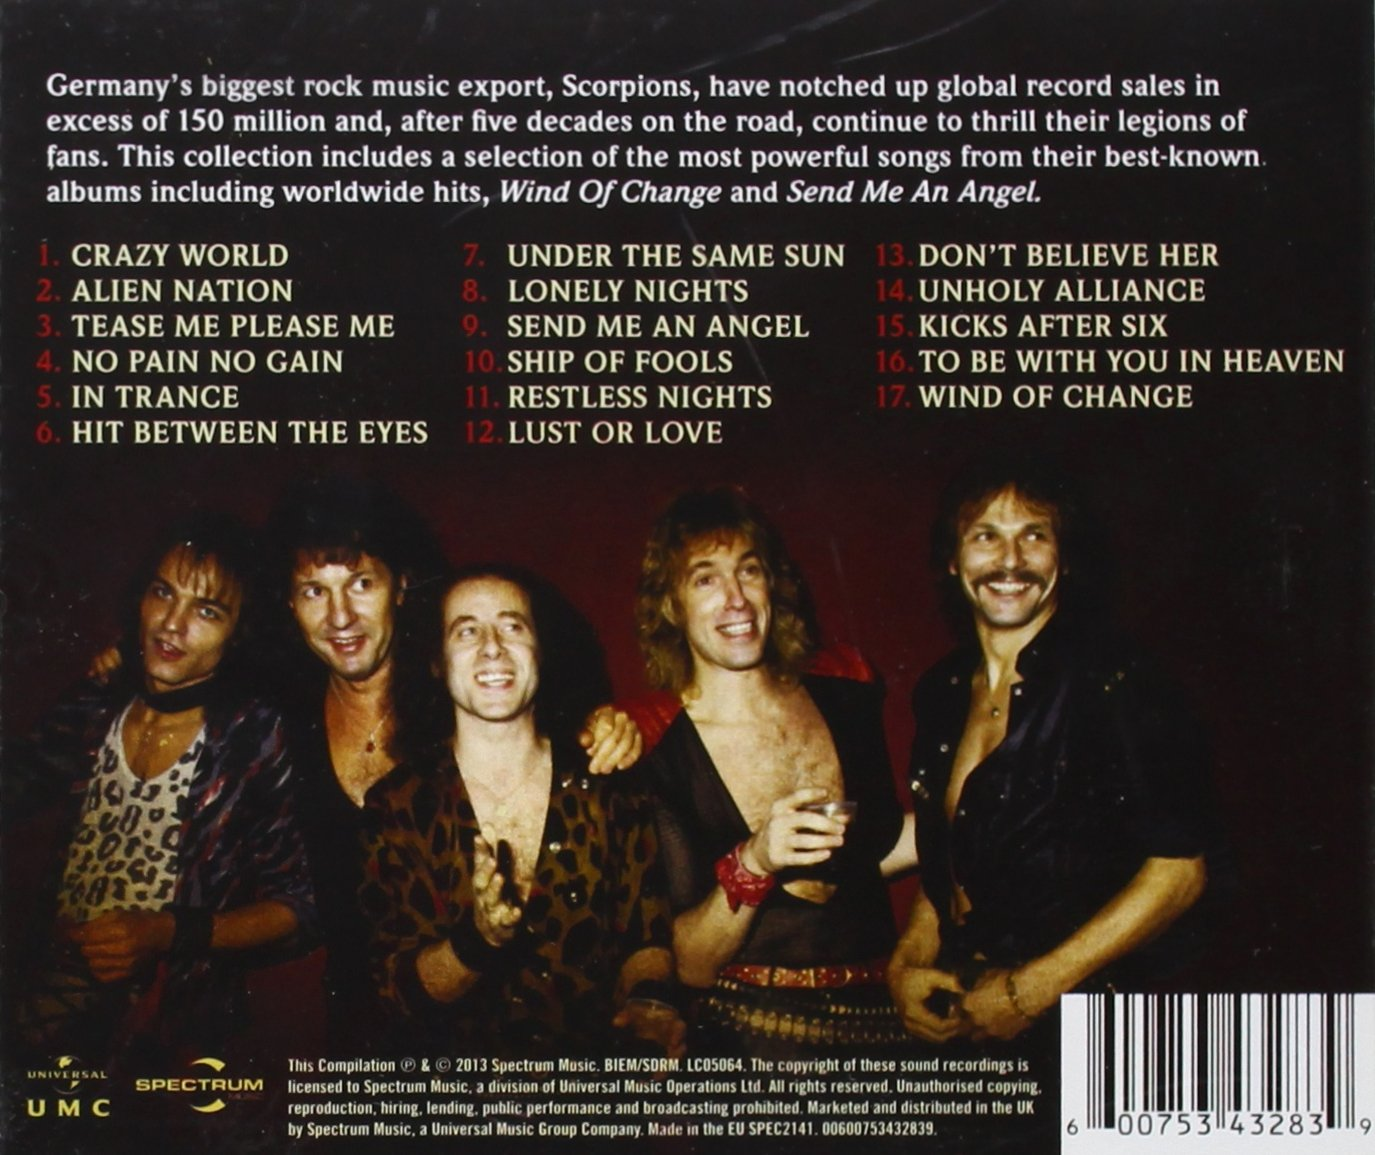 Wind Of Change: The Collection by Scorpions: Amazon.co.uk: Music